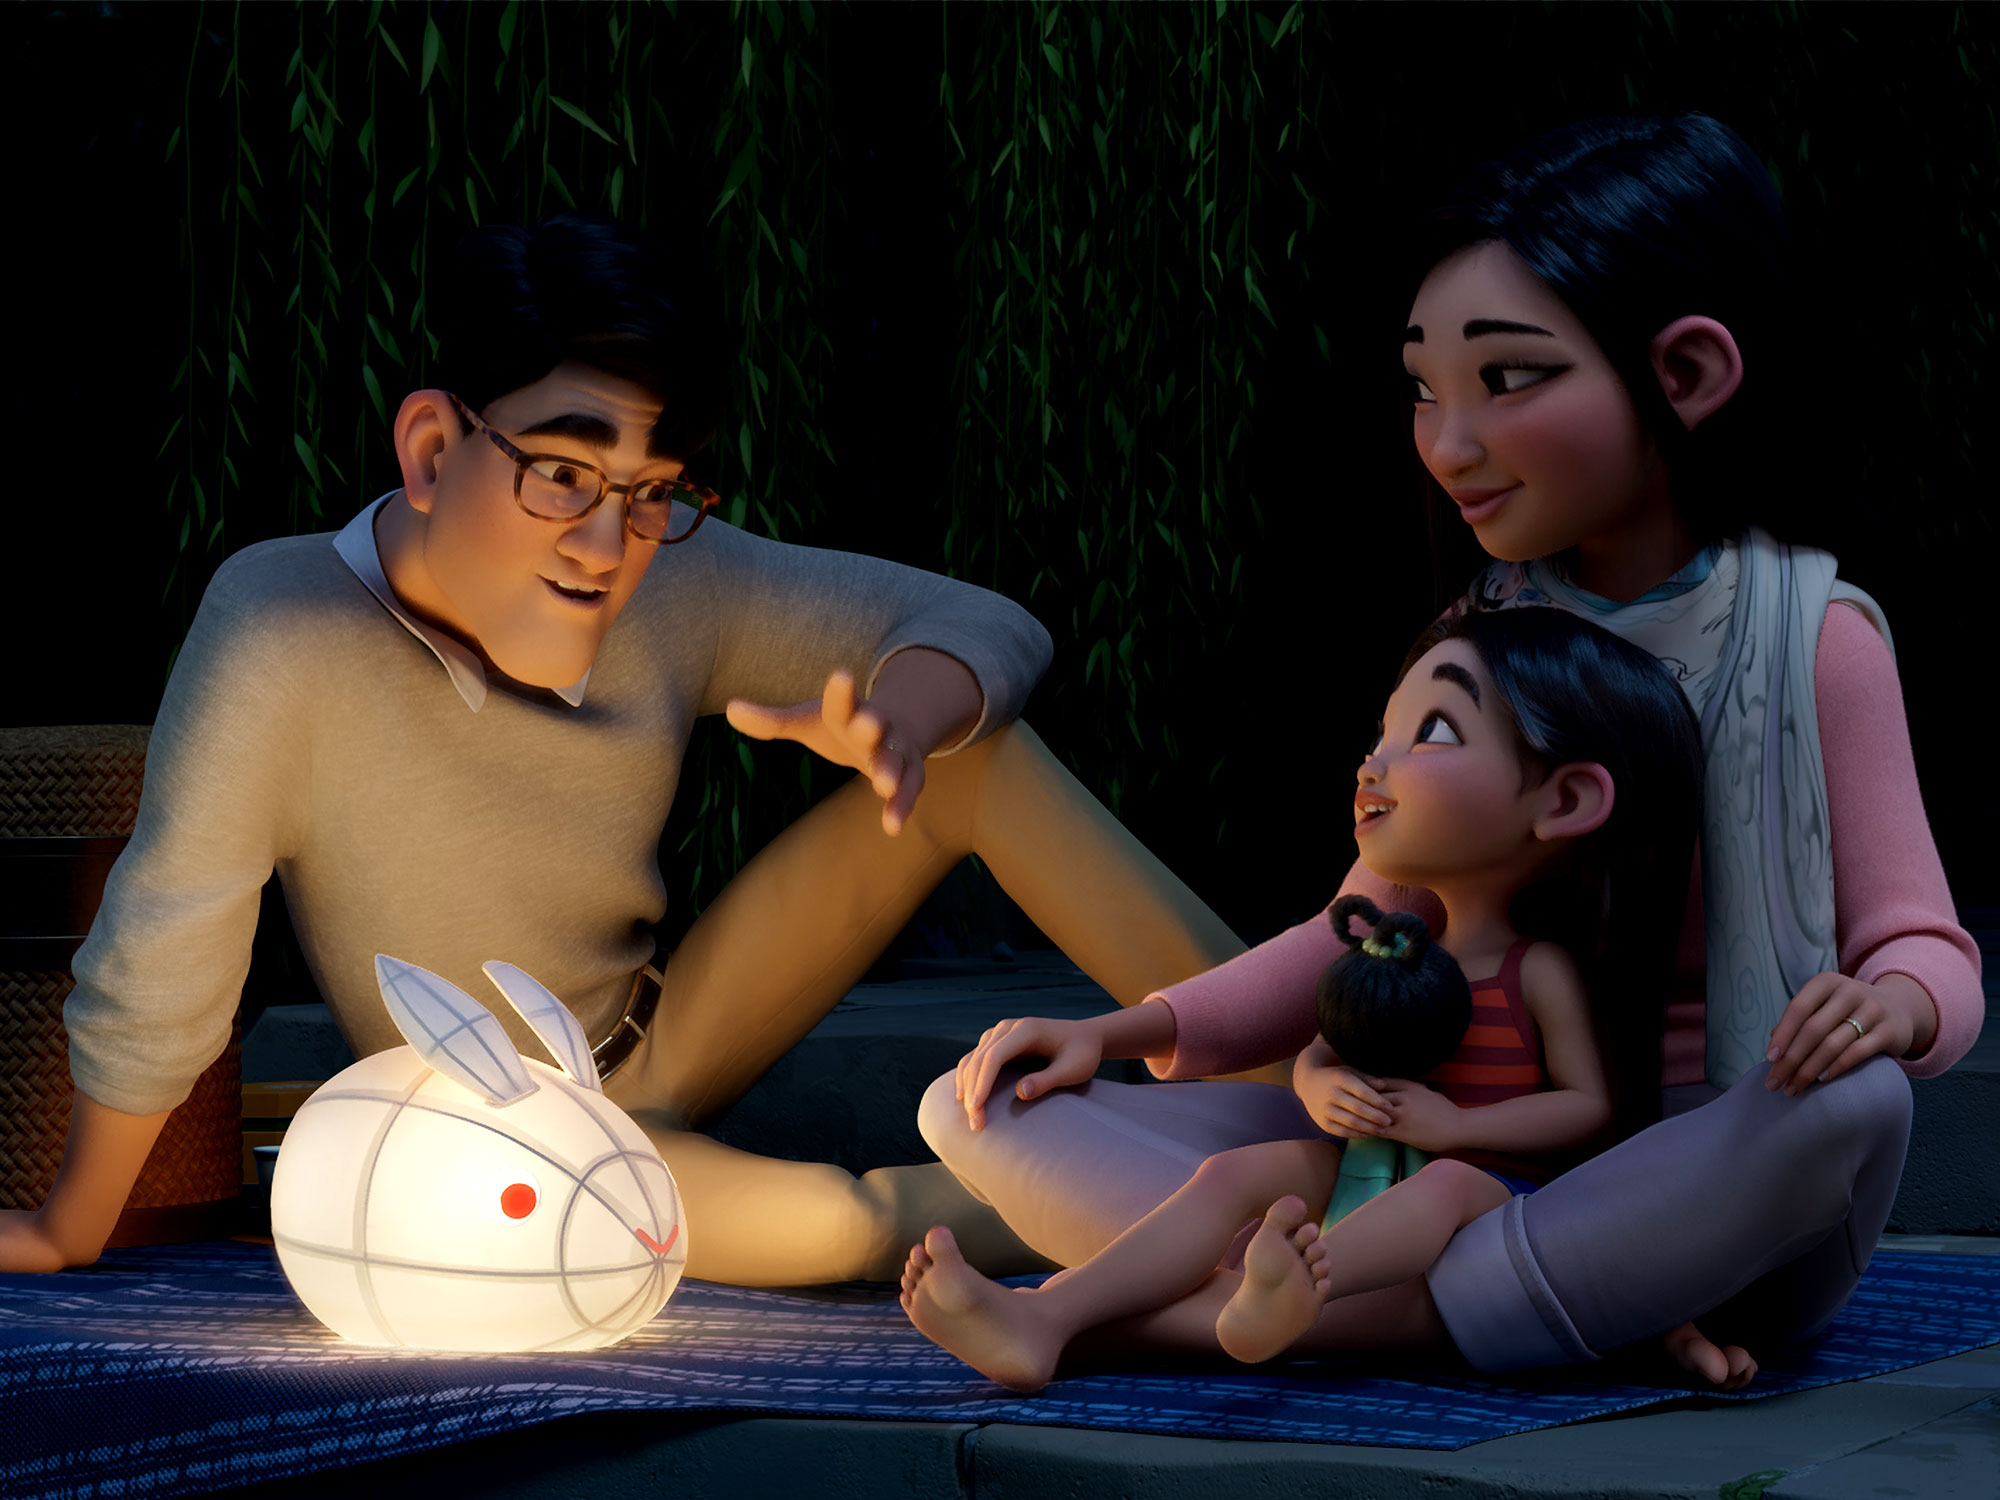 A young girl voyages into outer space in the Over the Moon trailer ...